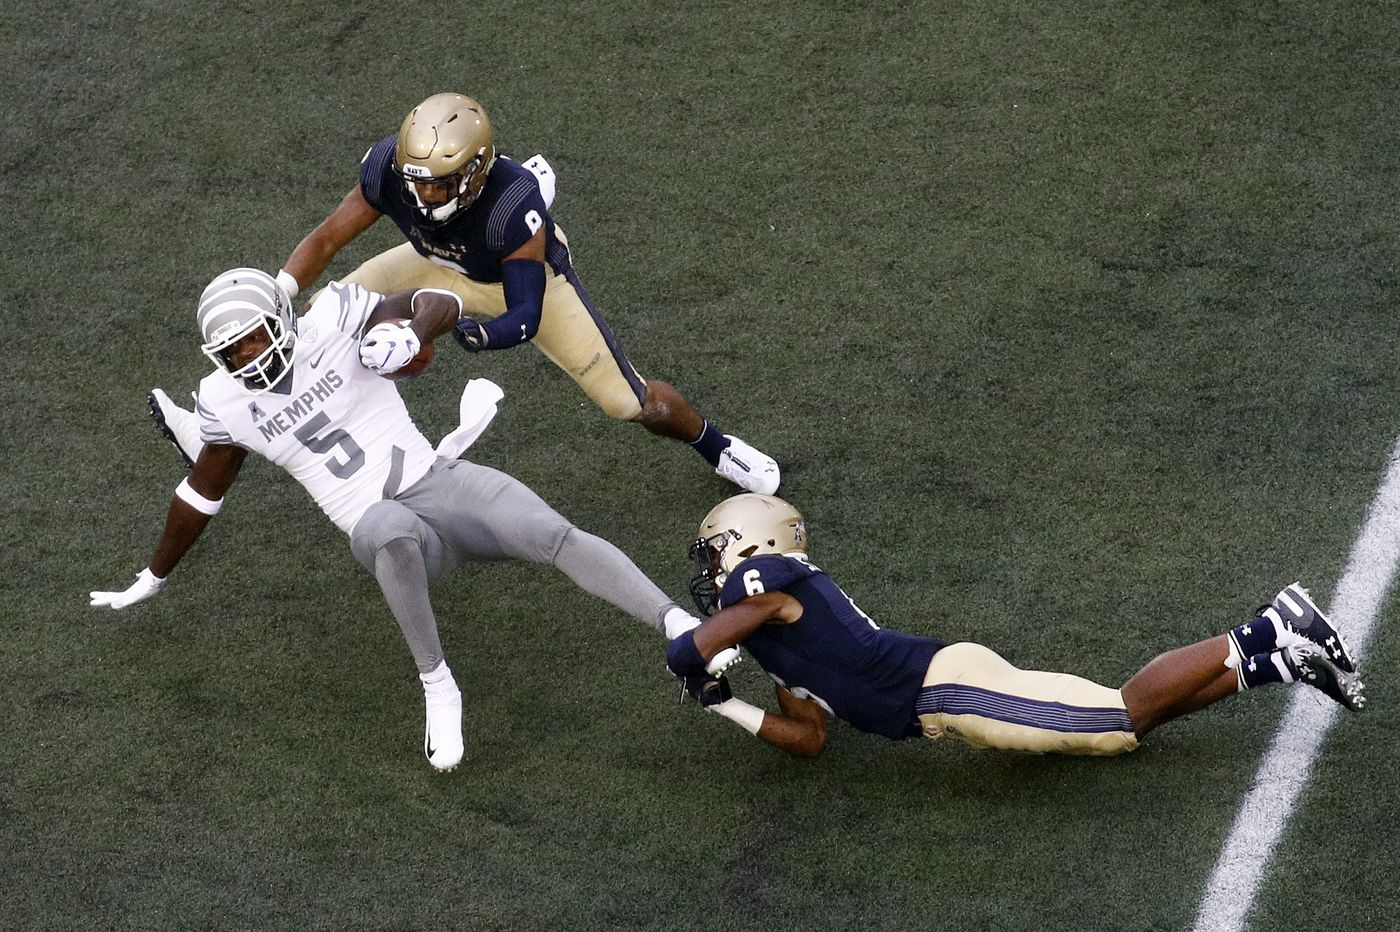 Sean Williams keeps Navy players positive during disappointing season